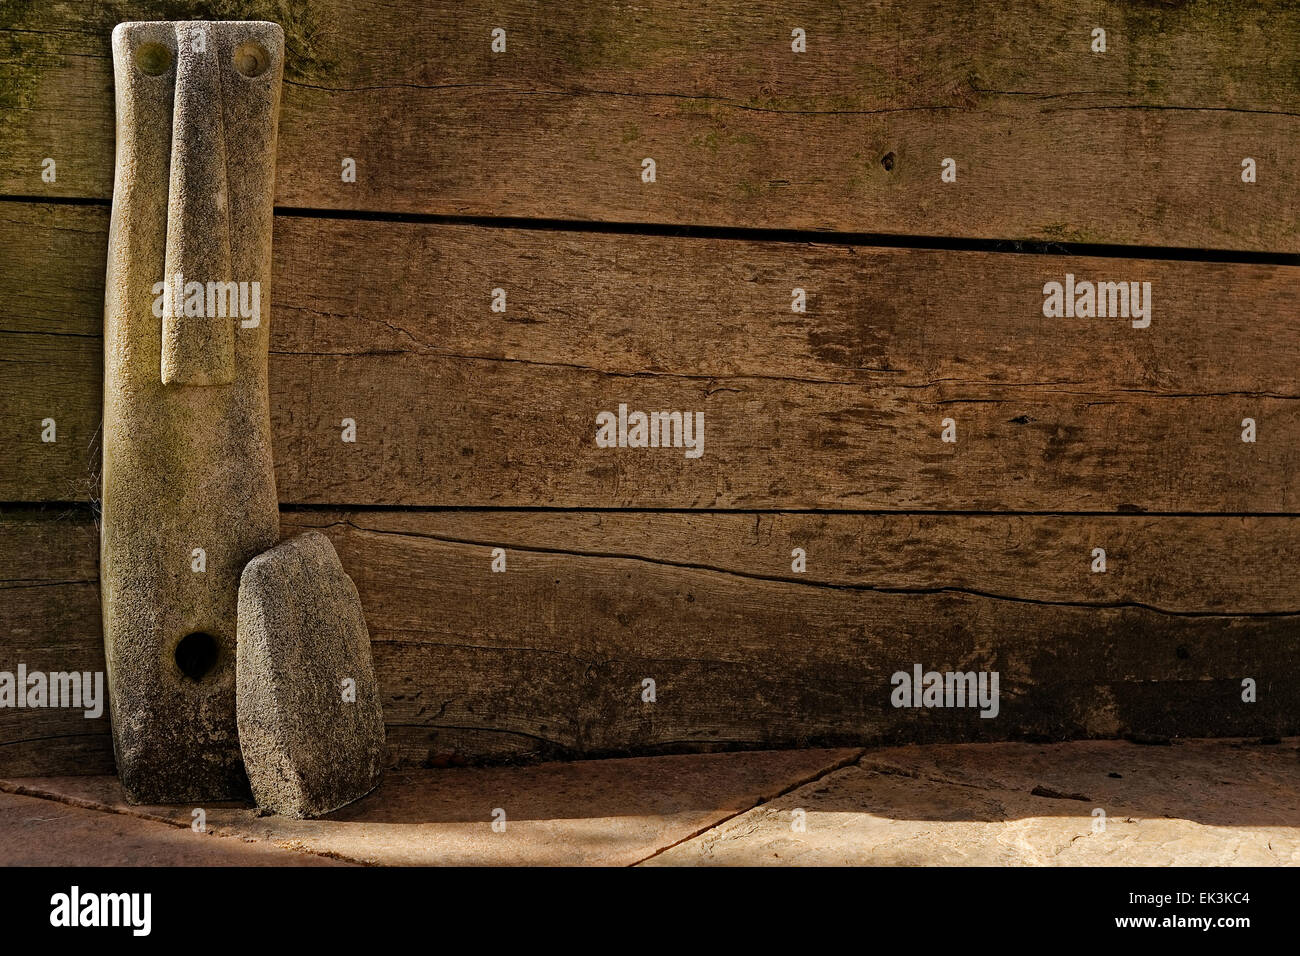 Concrete statue of stylized elongated face and hand against weathered wooden fence. - Stock Image